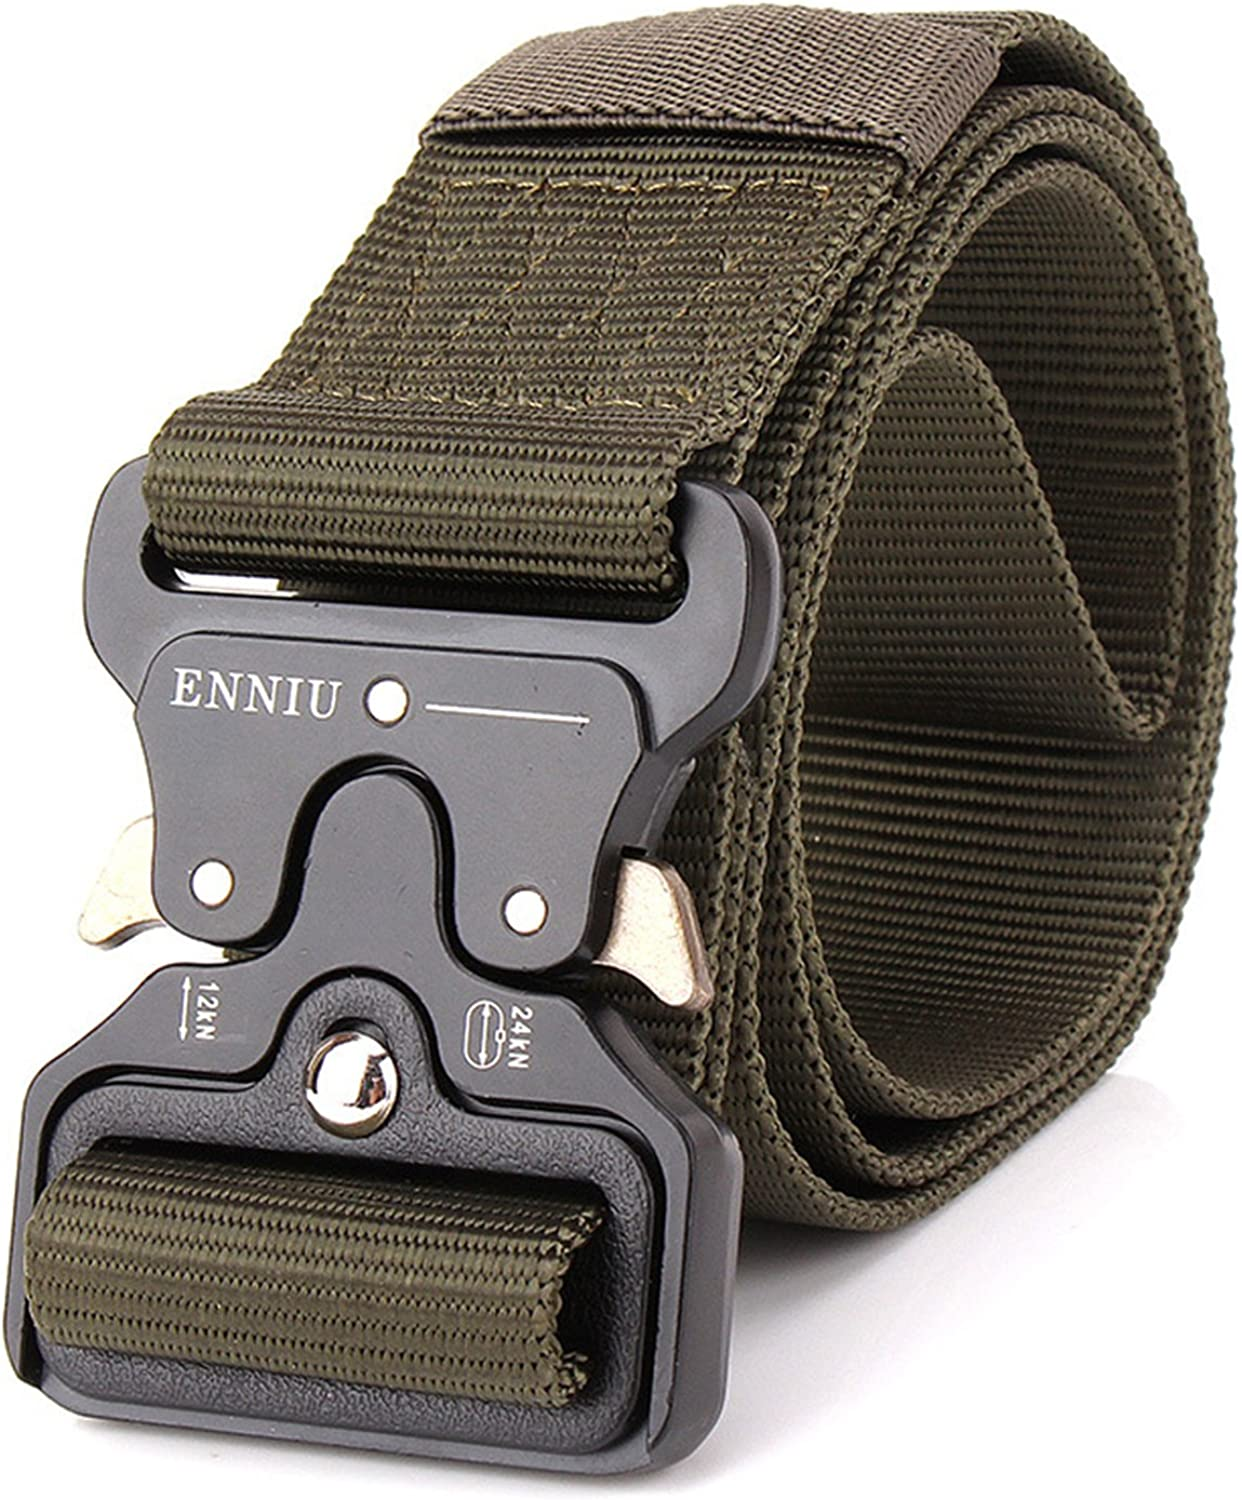 Mens Tactical Belt,Military Style Webbing Riggers Web Belt with Heavy-Duty Quick-Release